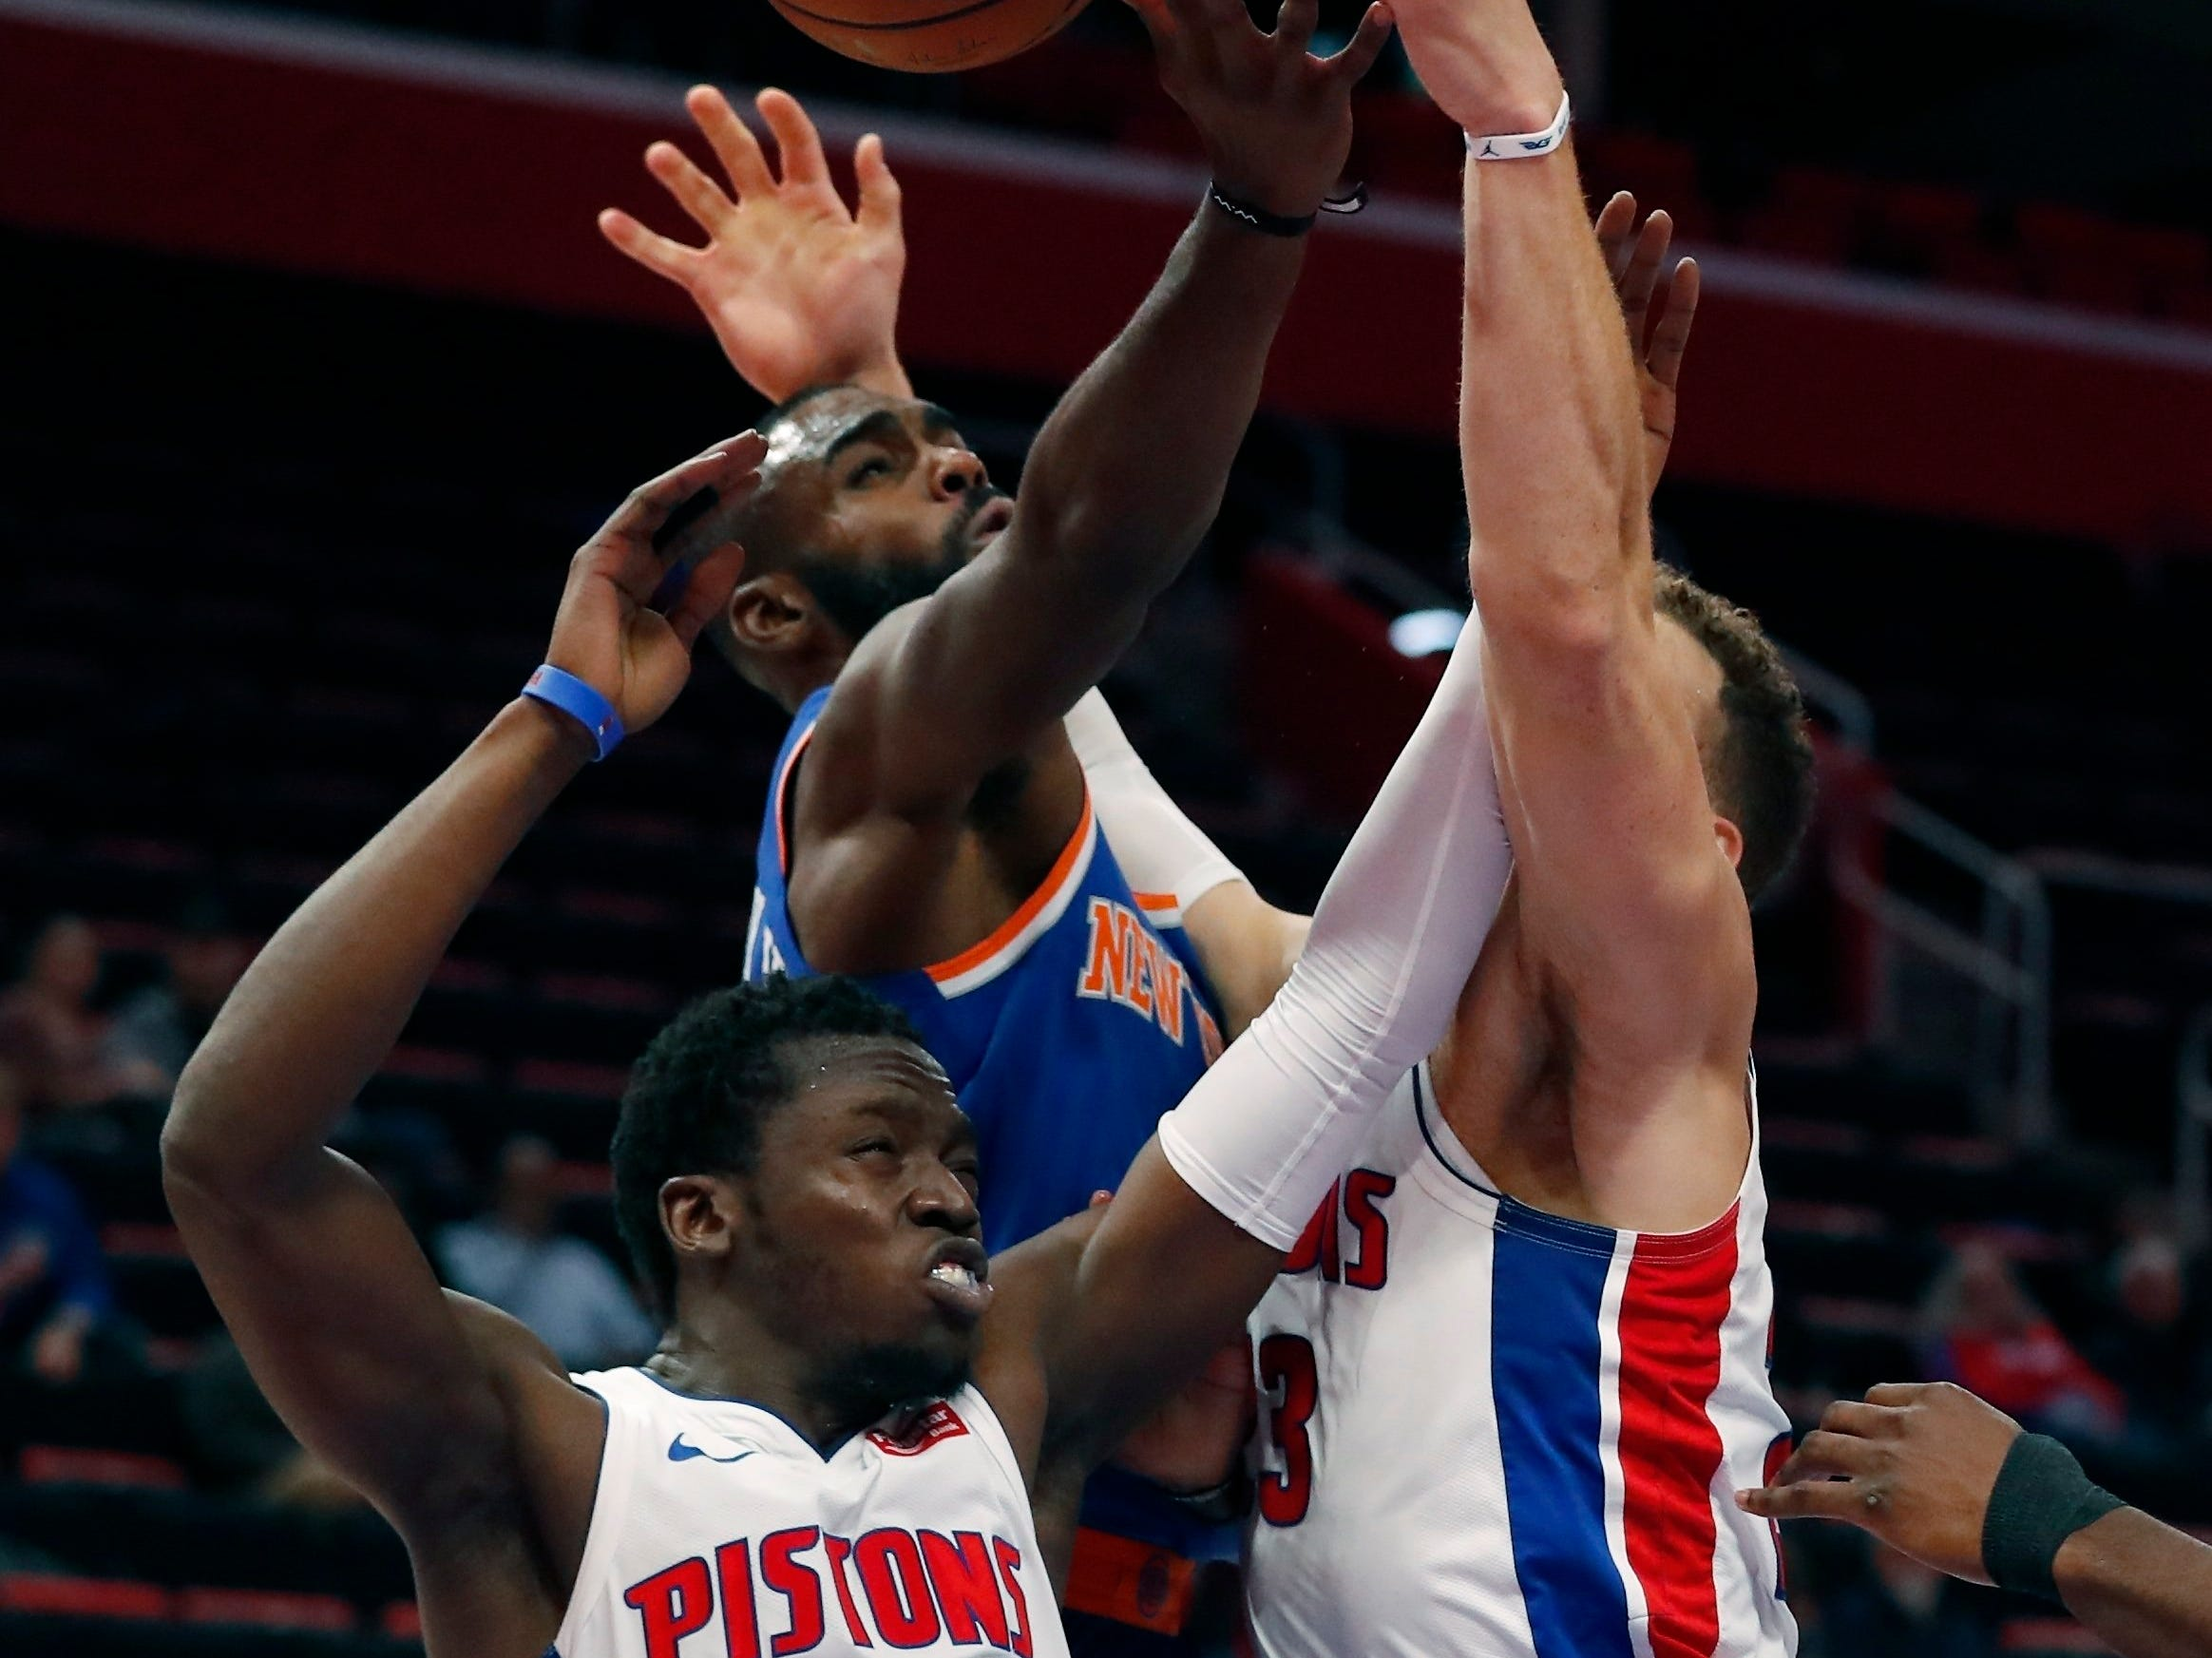 Detroit Pistons guard Reggie Jackson (1), New York Knicks guard Tim Hardaway Jr., and Pistons forward Blake Griffin, right, reach for a rebound during the first half of an NBA basketball game Tuesday, Nov. 27, 2018, in Detroit.